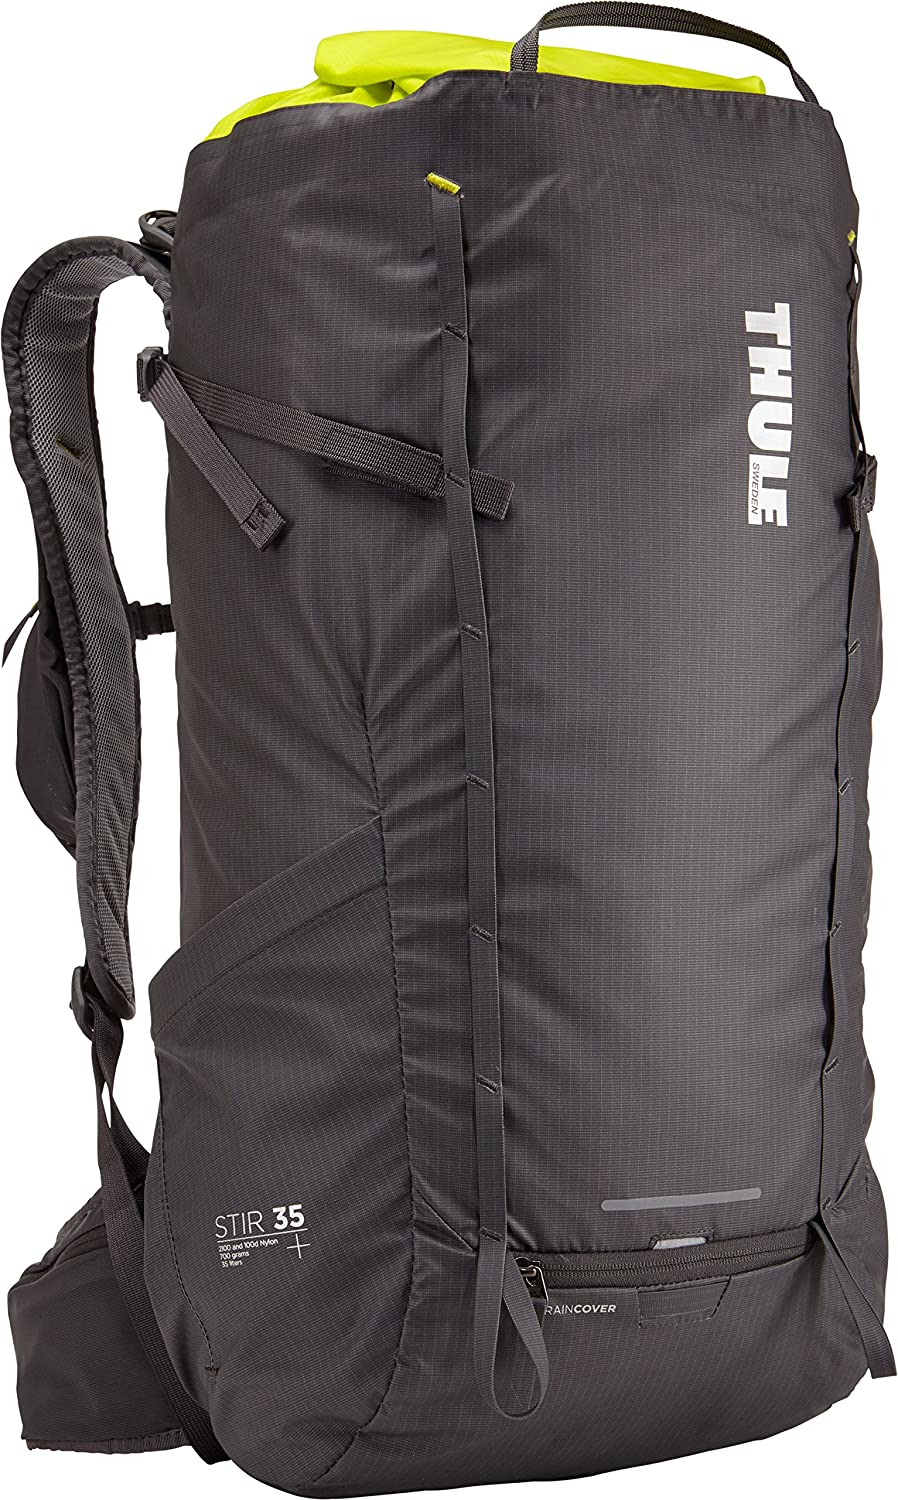 Thule Stir 35L Men's Hiking Pack – Dark Shadow günstig kaufen